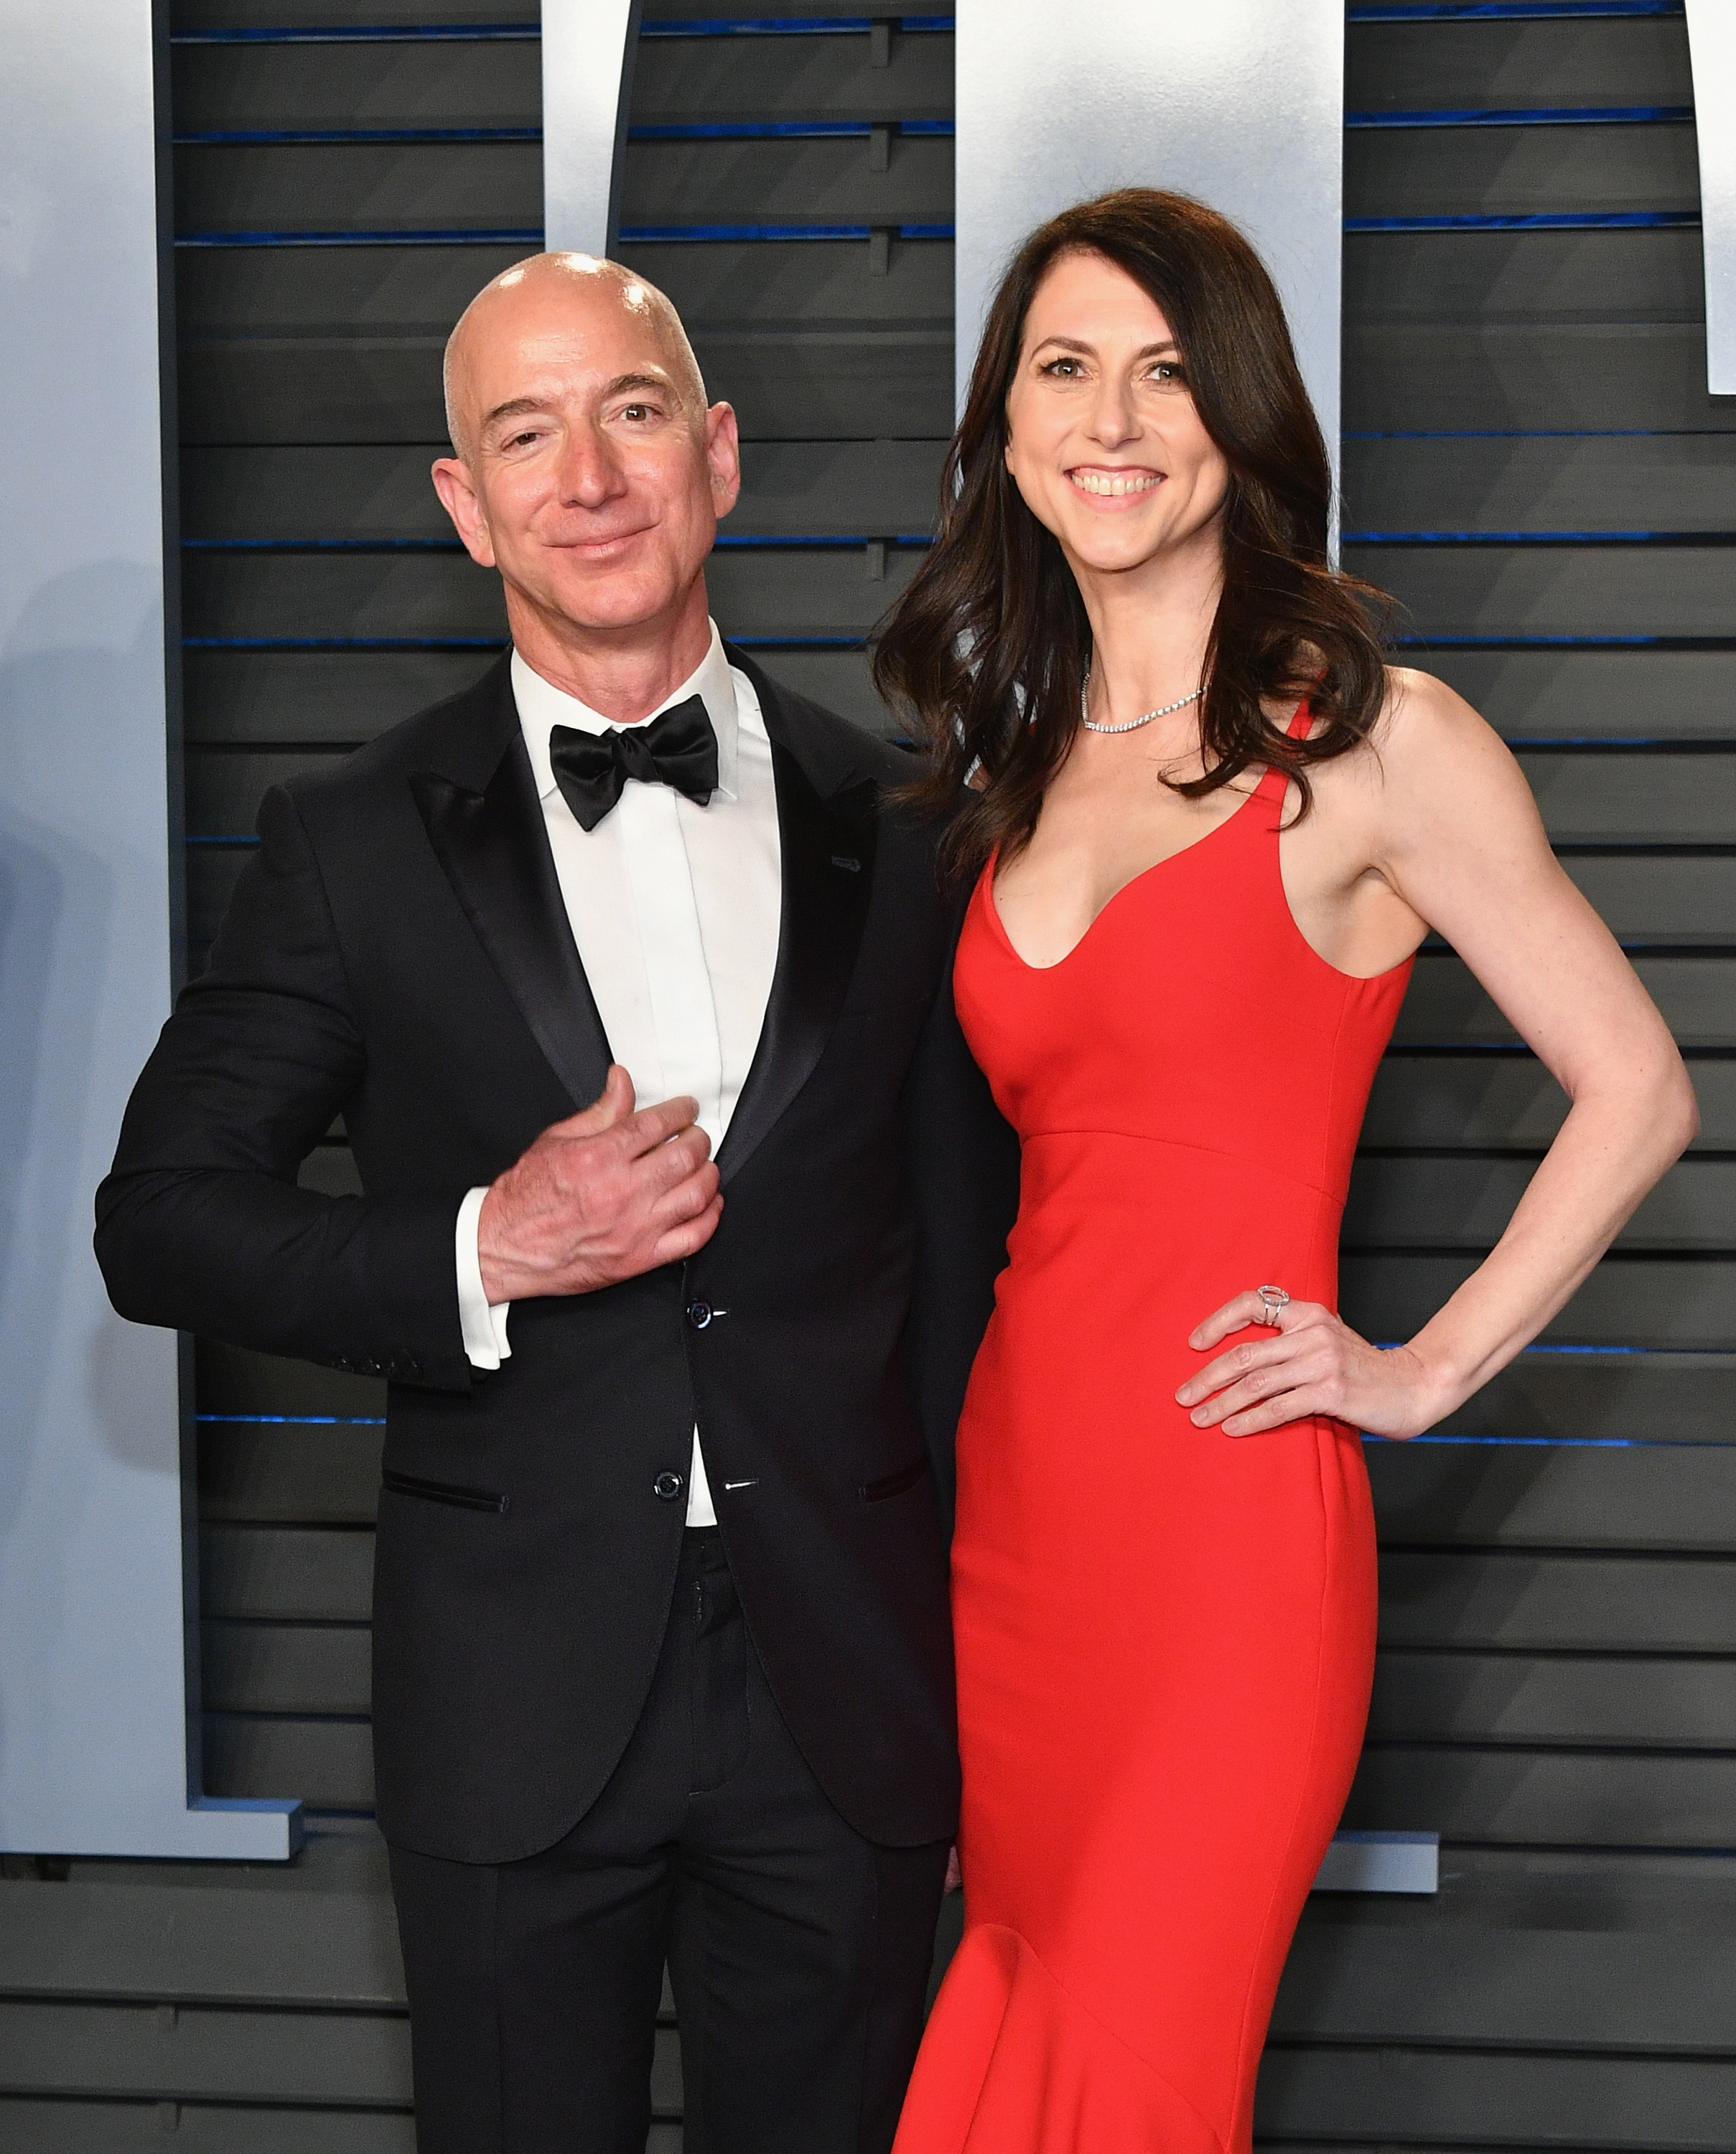 Jeff Bezos (L) and MacKenzie Bezos attend the 2018 Vanity Fair Oscar Party hosted by Radhika Jones at Wallis Annenberg Center for the Performing Arts on March 4, 2018, in Beverly Hills, California. (Getty)